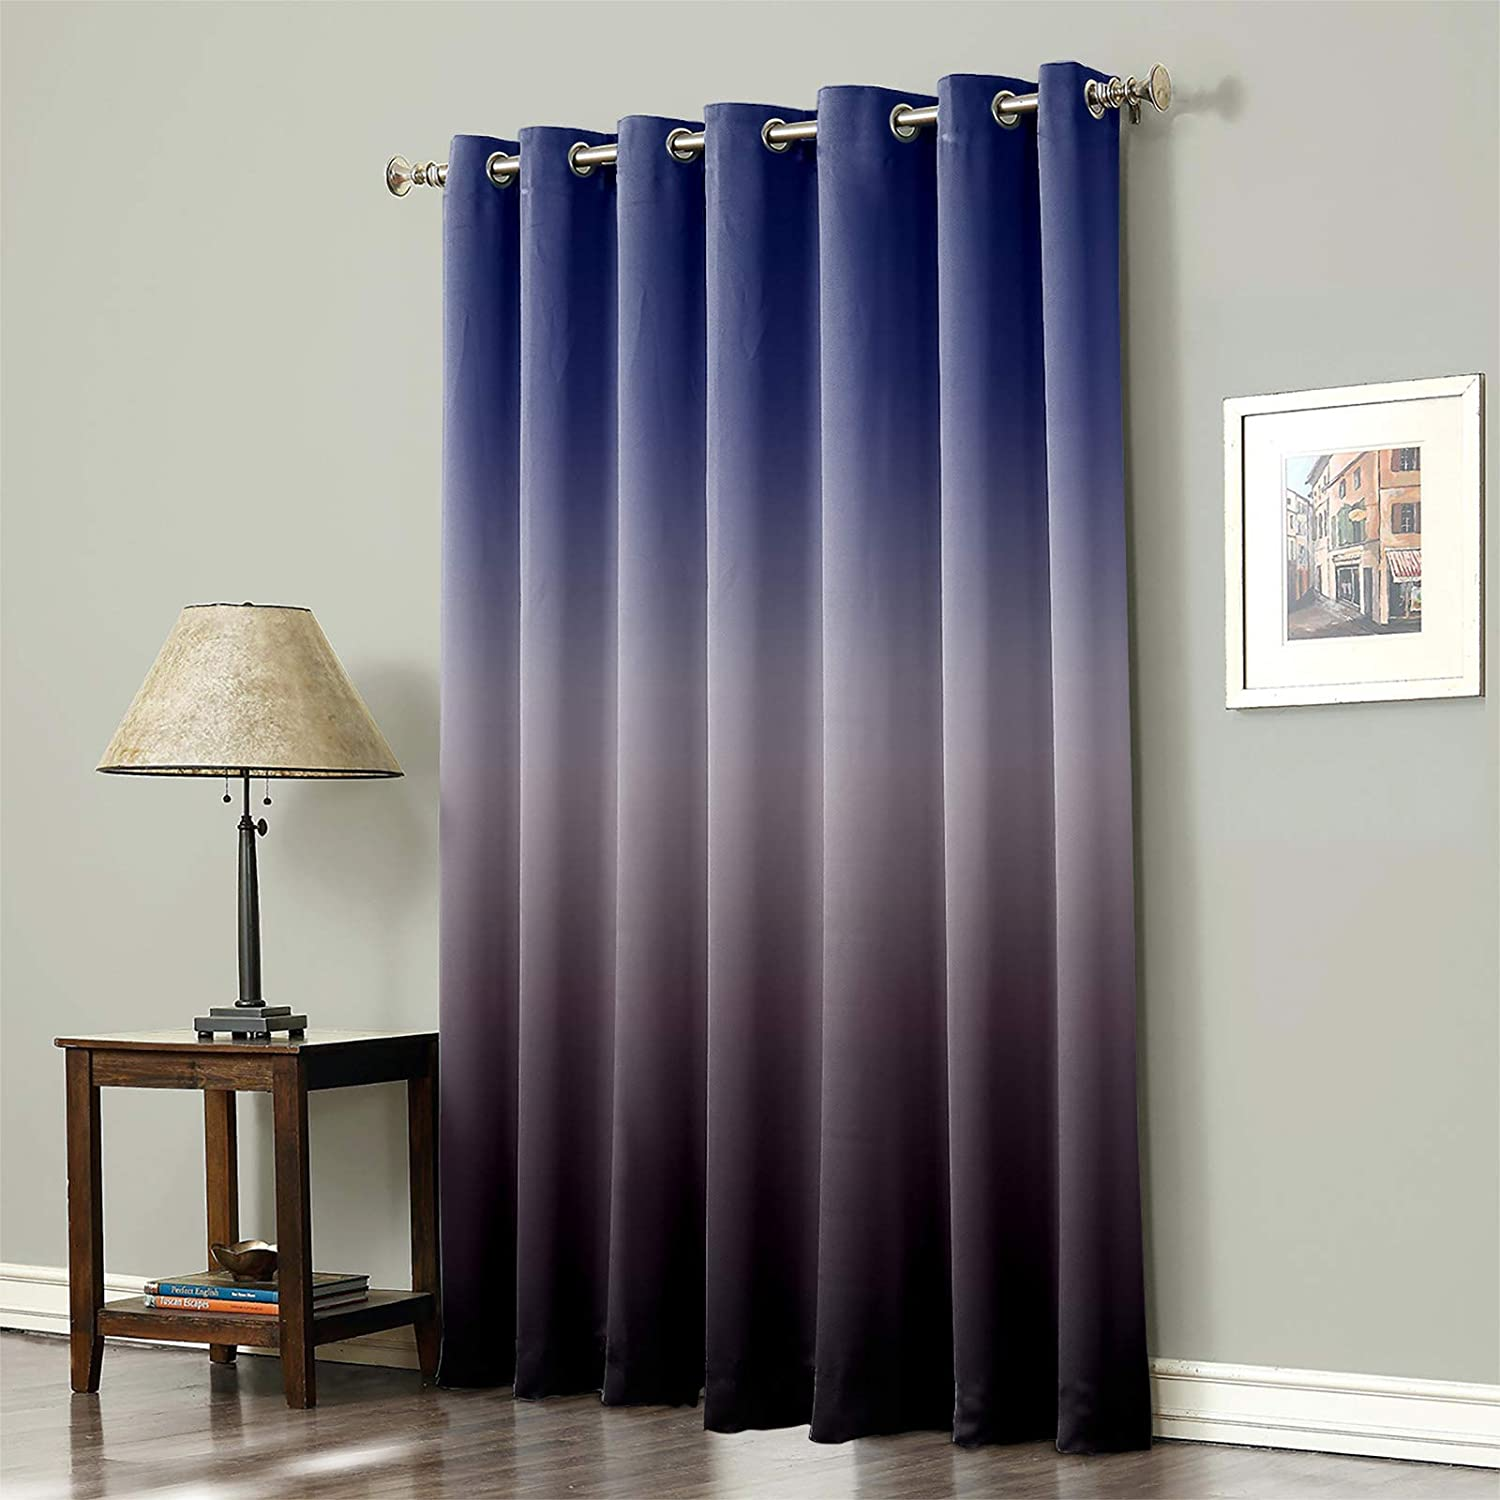 Thermal Insulated Blackout Curtain for Elegant Gradient Room- Bed Color Cheap mail order sales